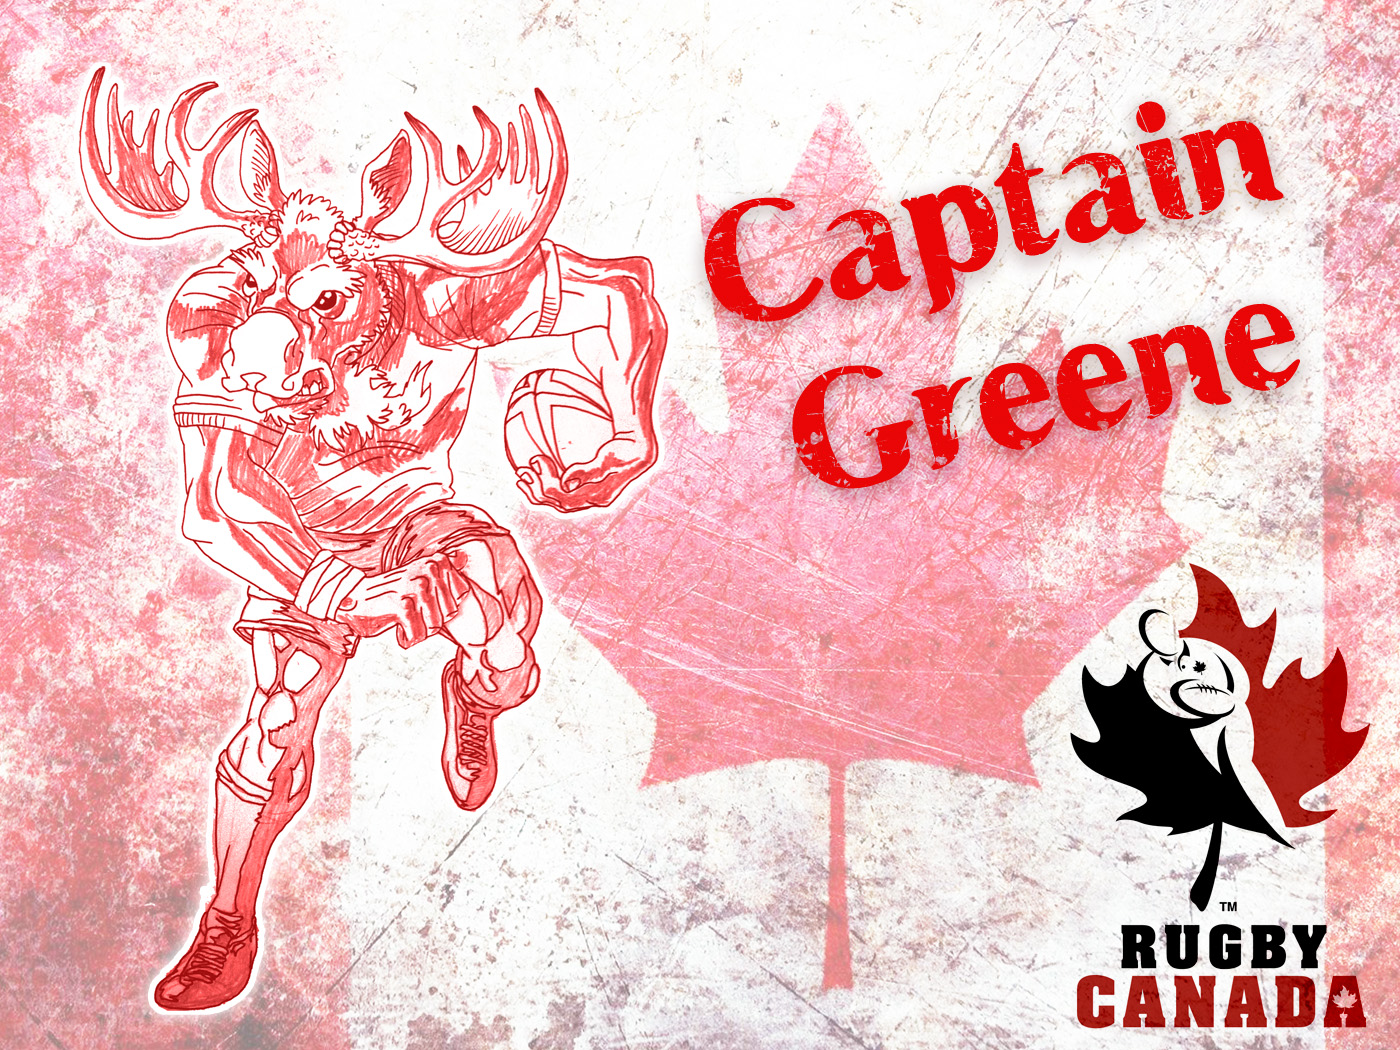 capitain greene canada rugby mascot by HaPoTi